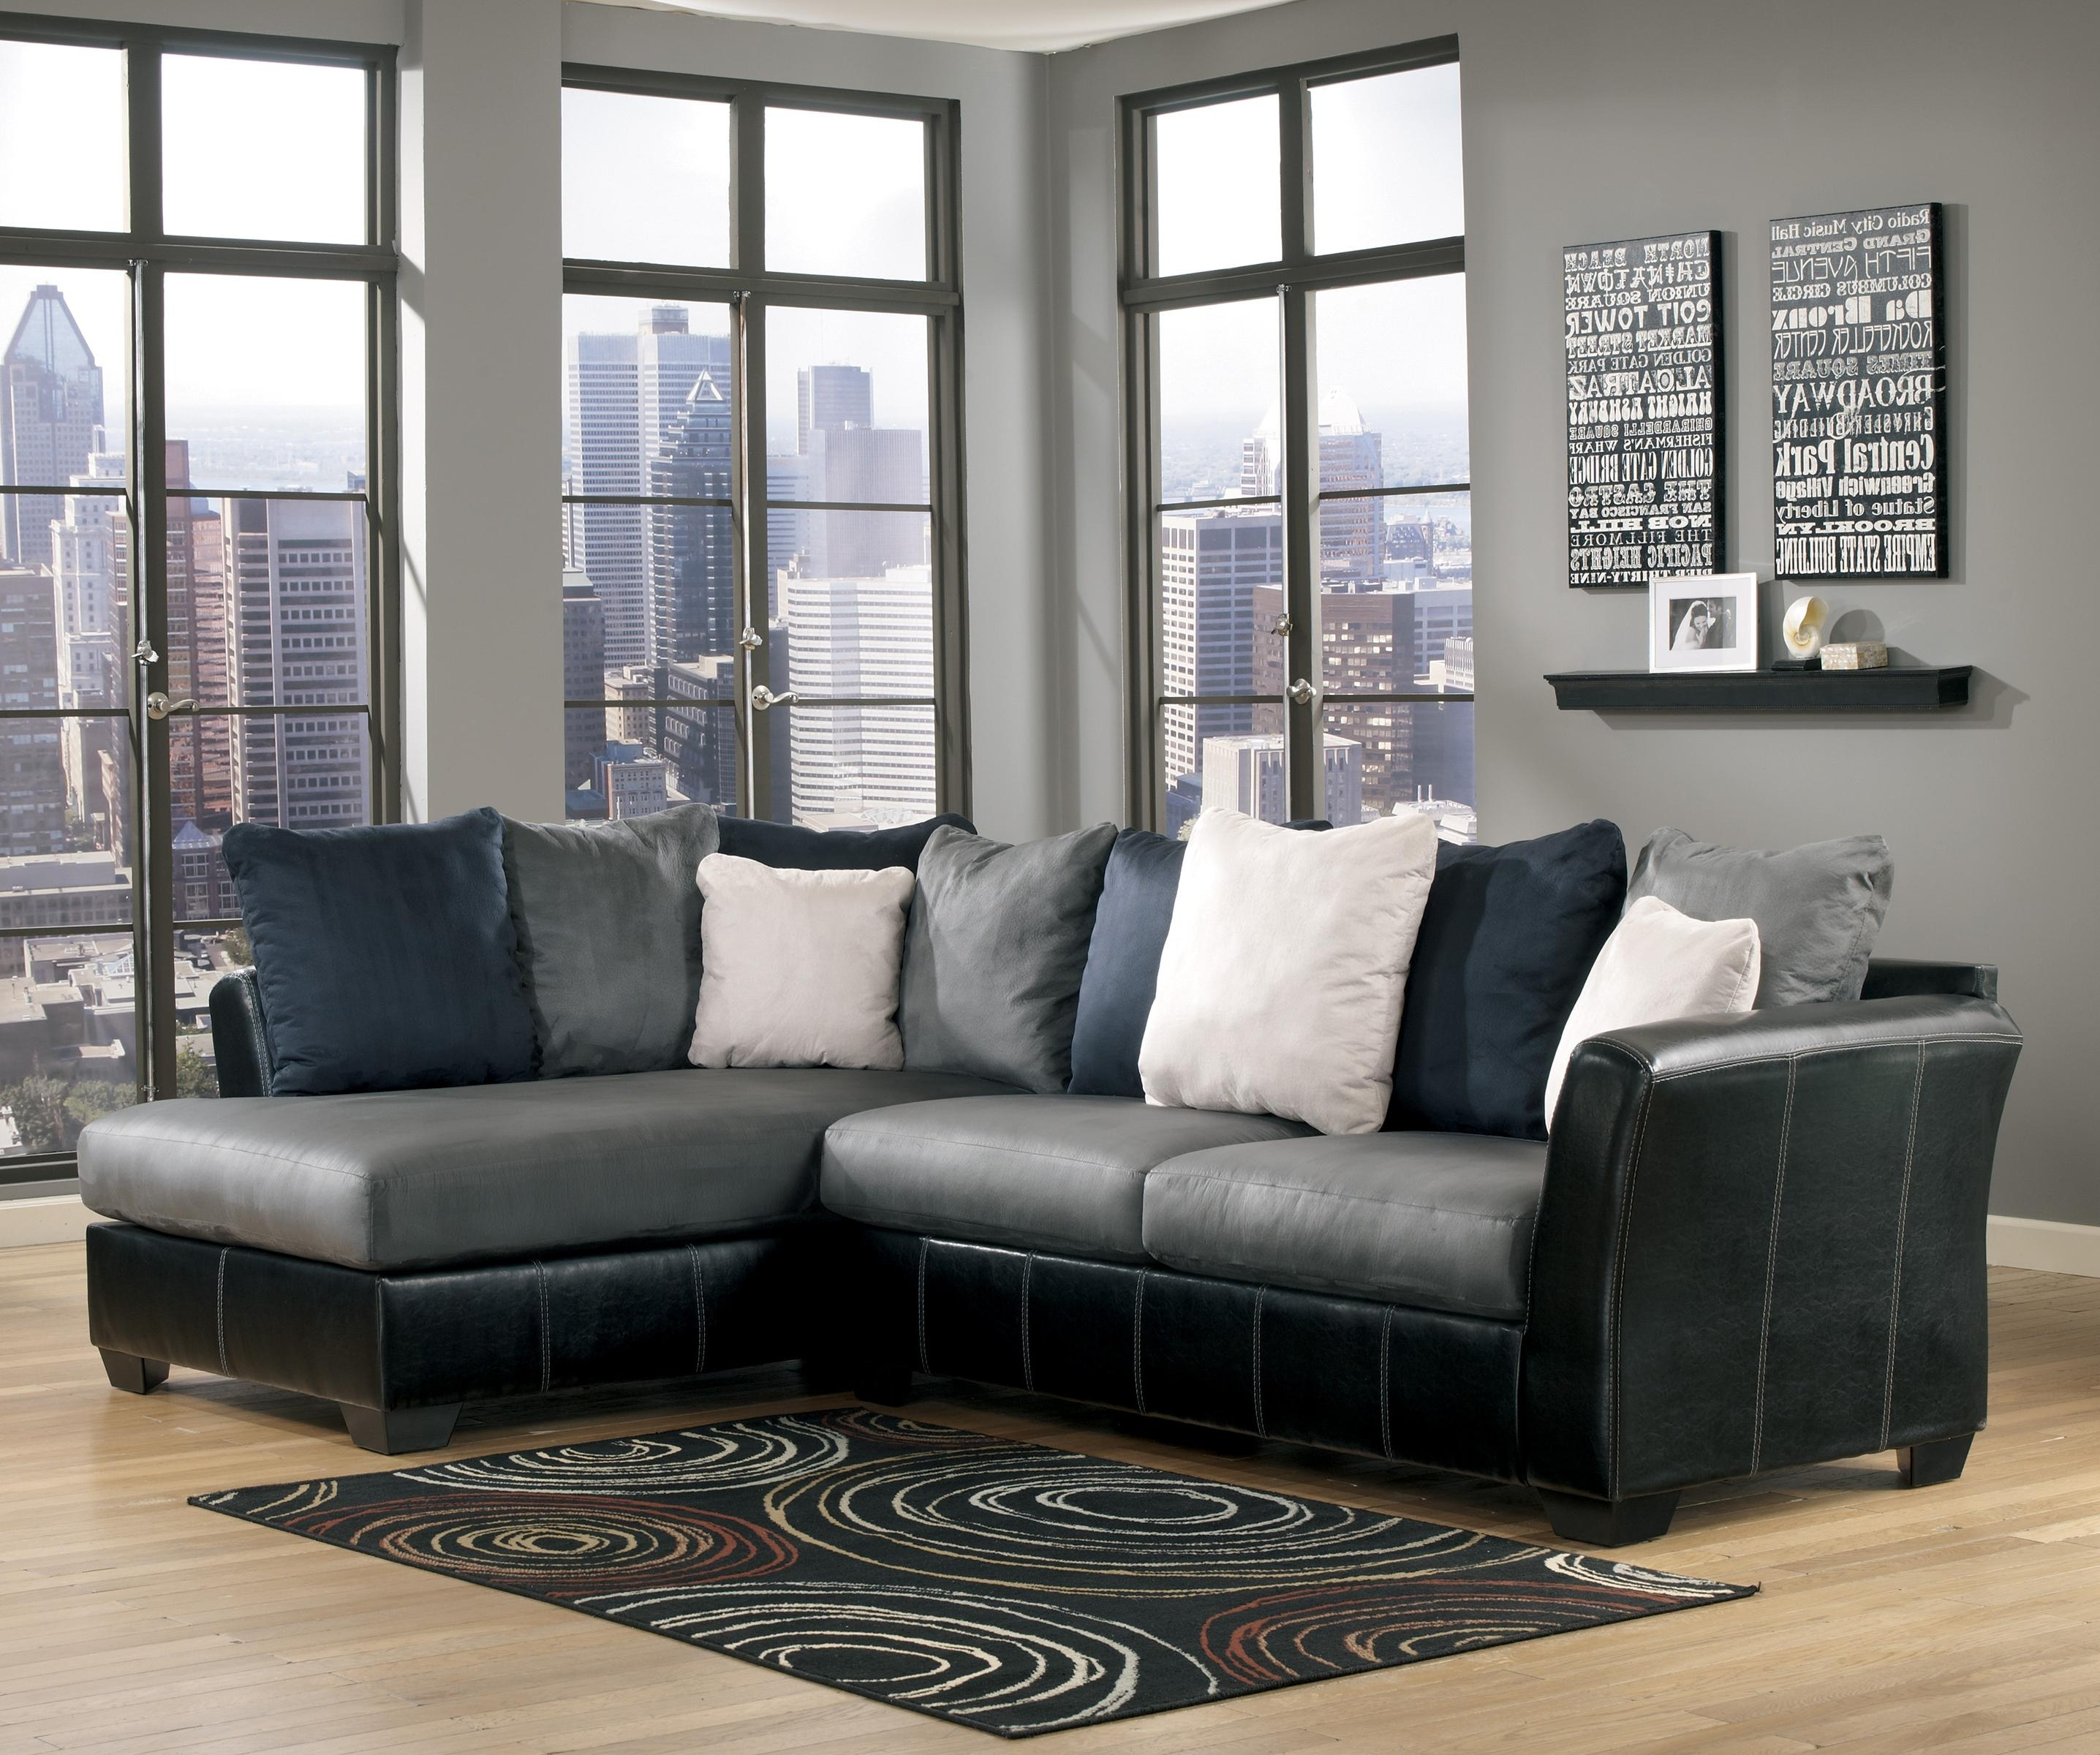 Masoli – Cobblestone 2 Piece Sectional With Chaisebenchcraft Pertaining To Eau Claire Wi Sectional Sofas (View 7 of 10)